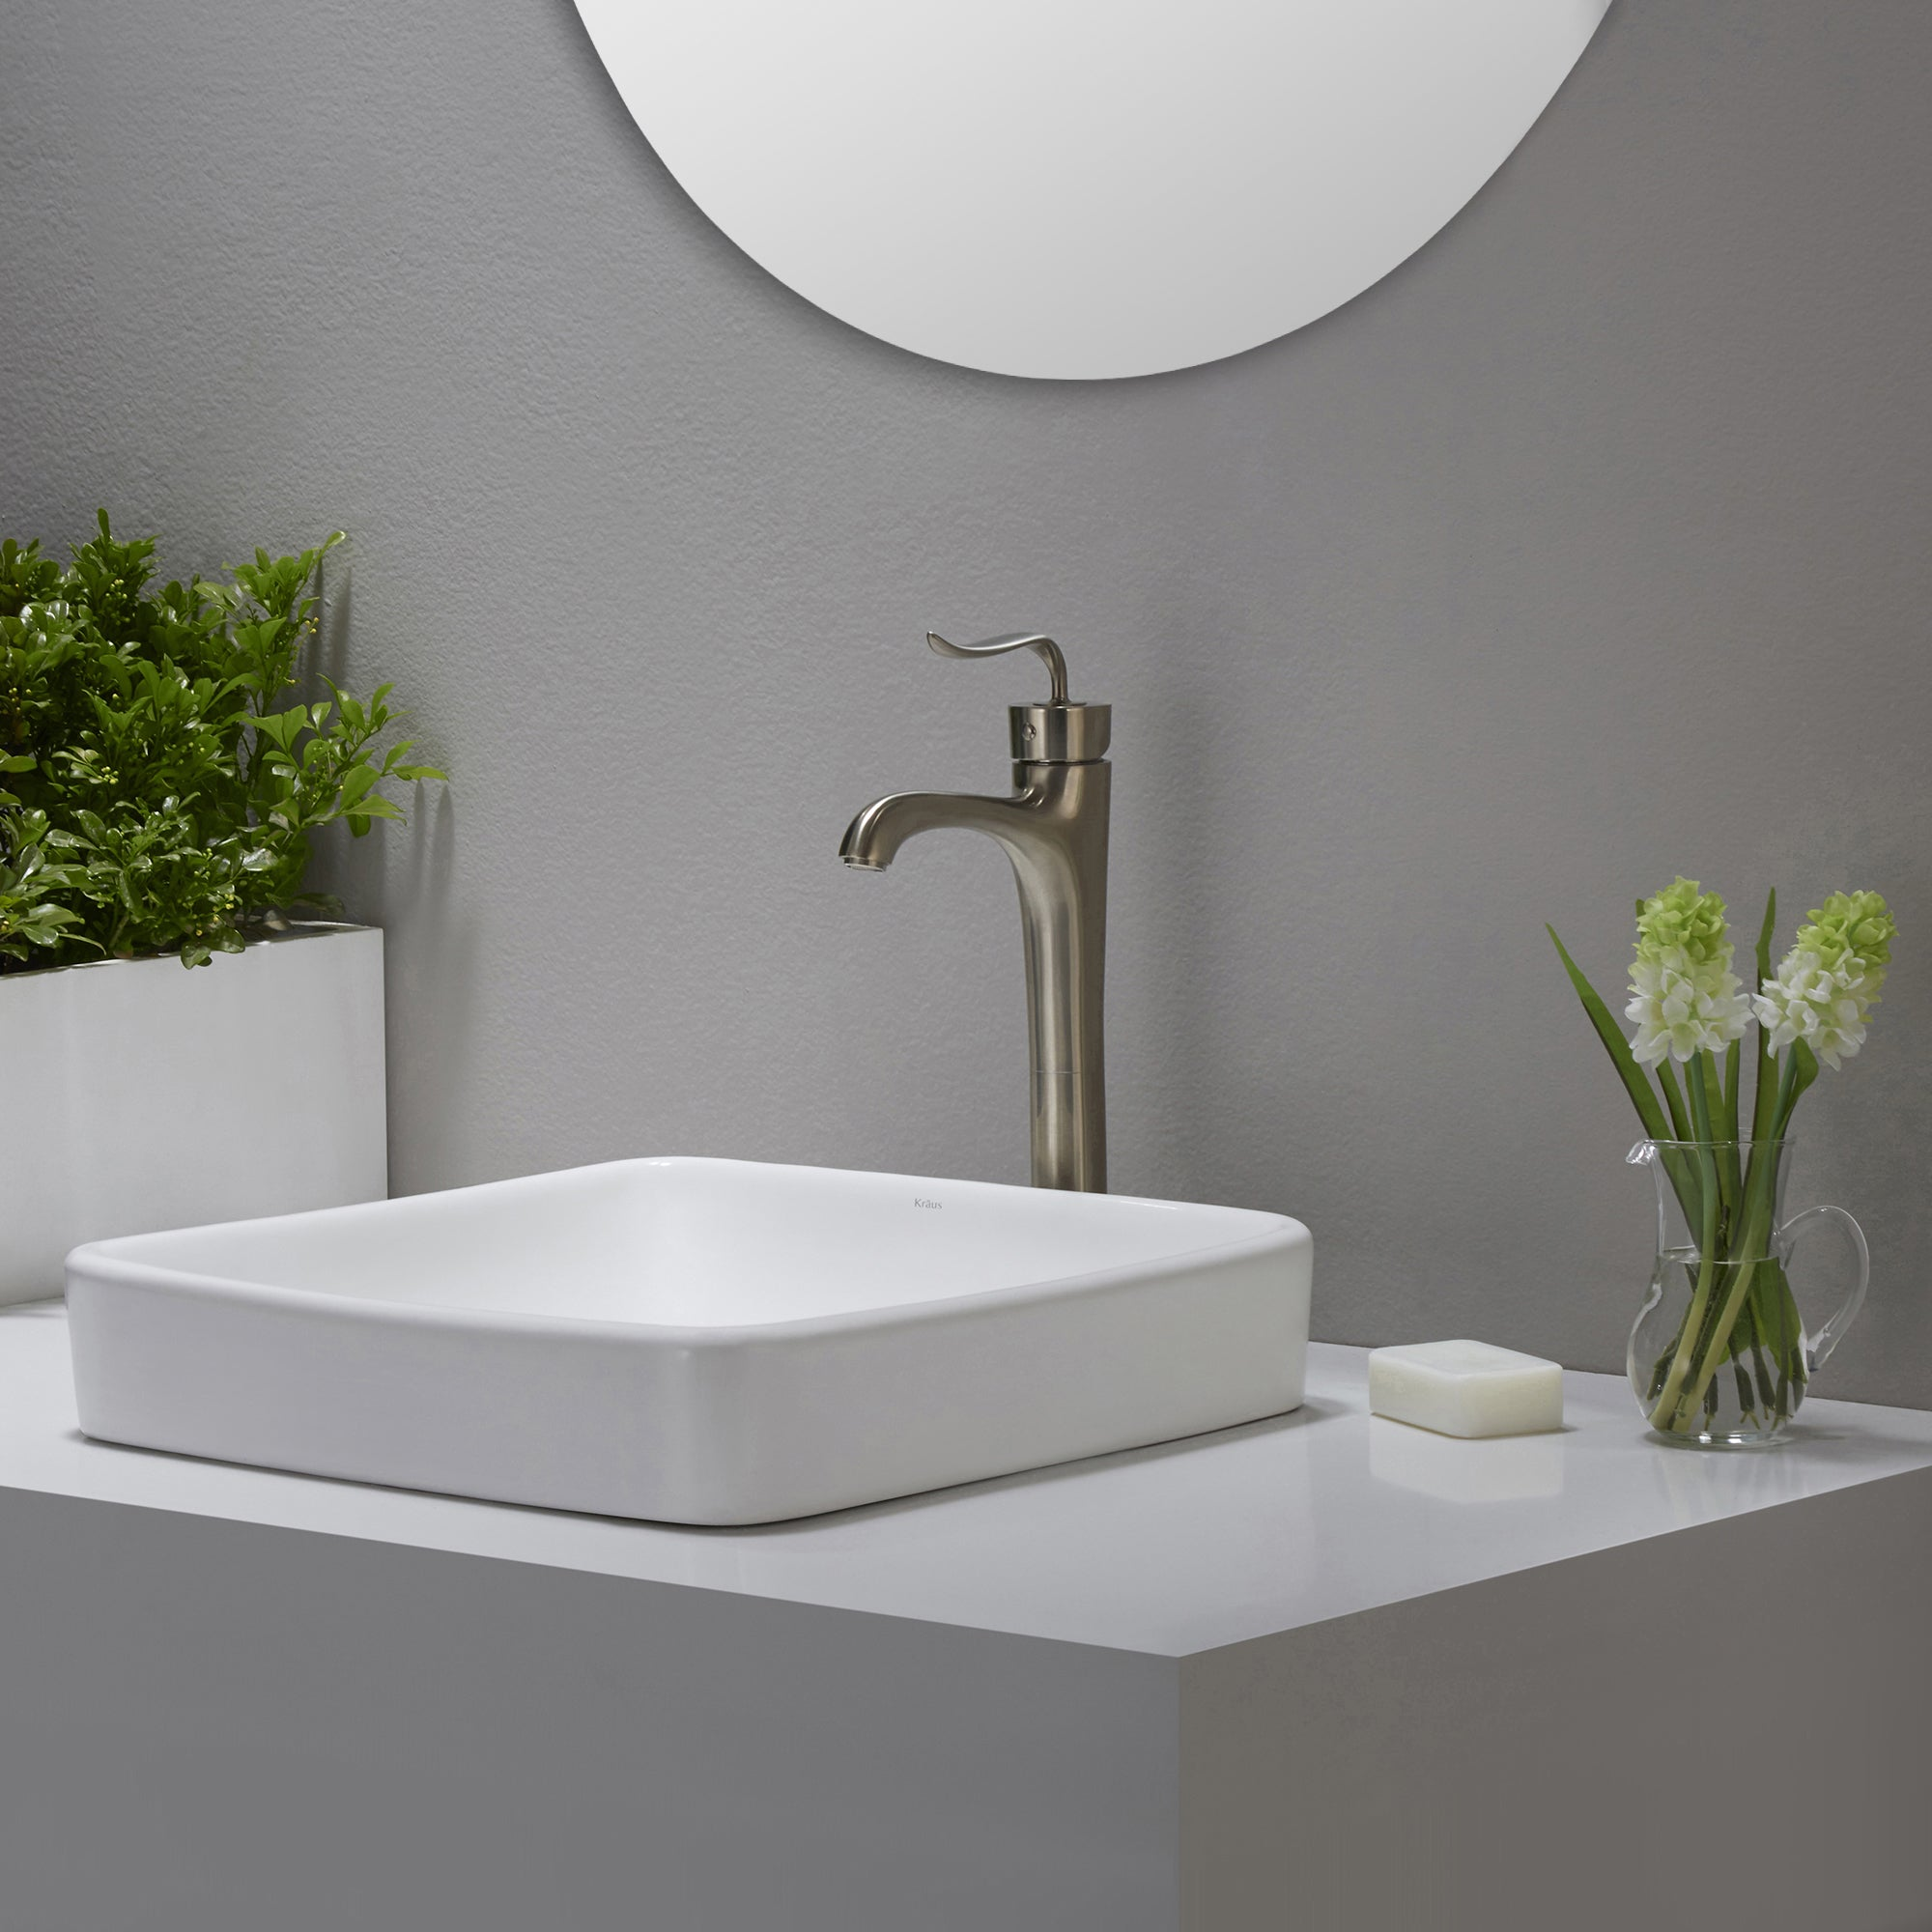 Shop KRAUS Elavo Series Square Ceramic Semi-Recessed Bathroom Sink - On Sale - Free Shipping Today - Overstock.com - 10482046